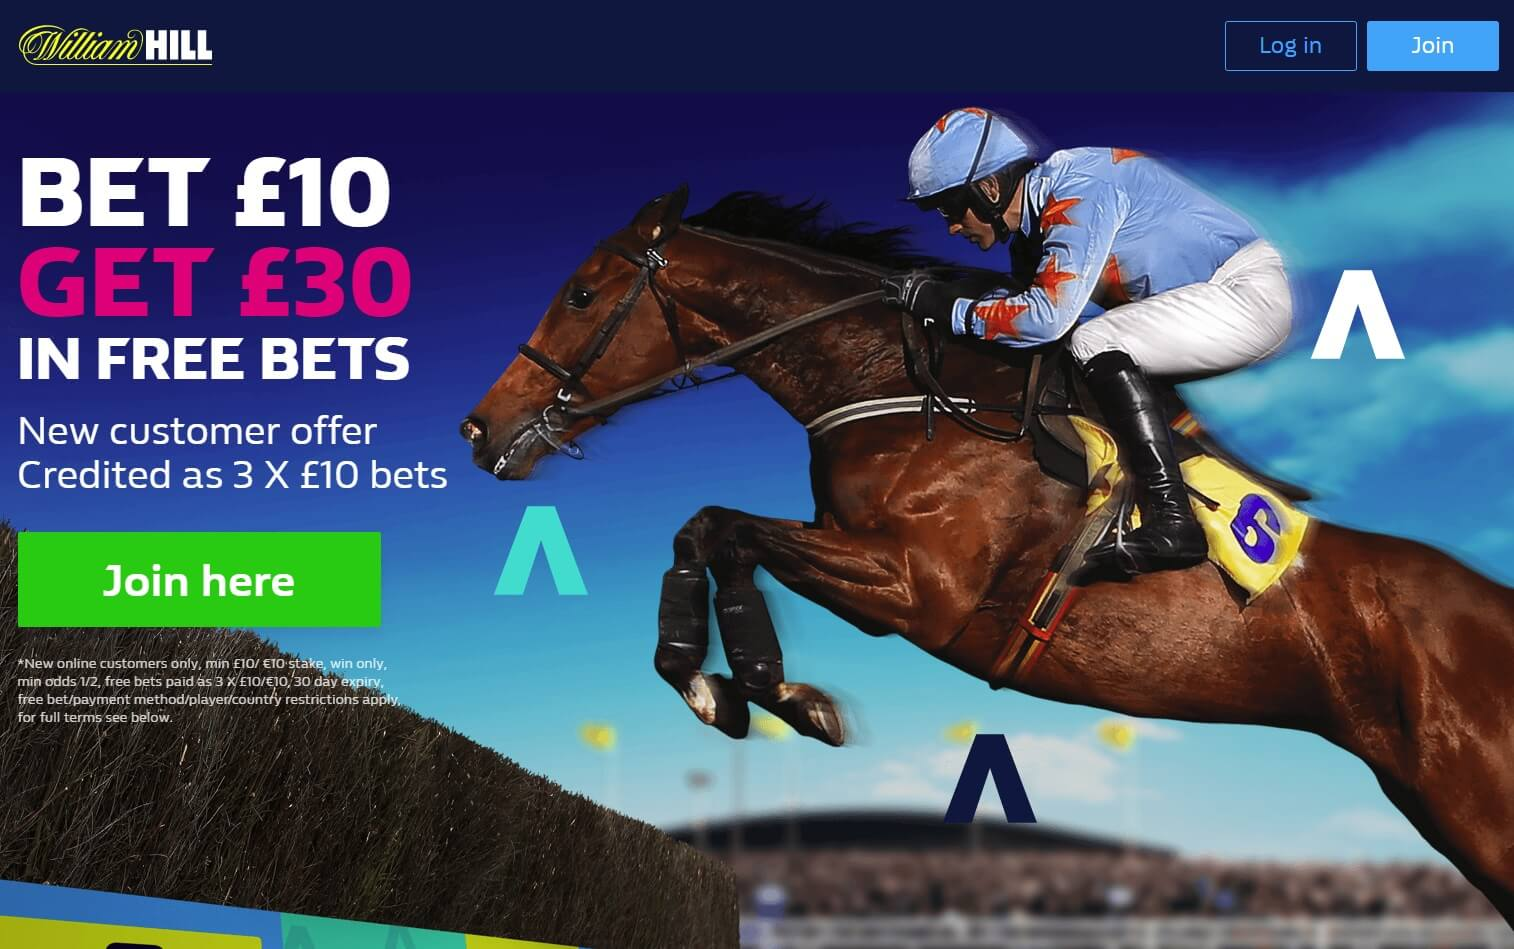 William Hill Promo Code UK